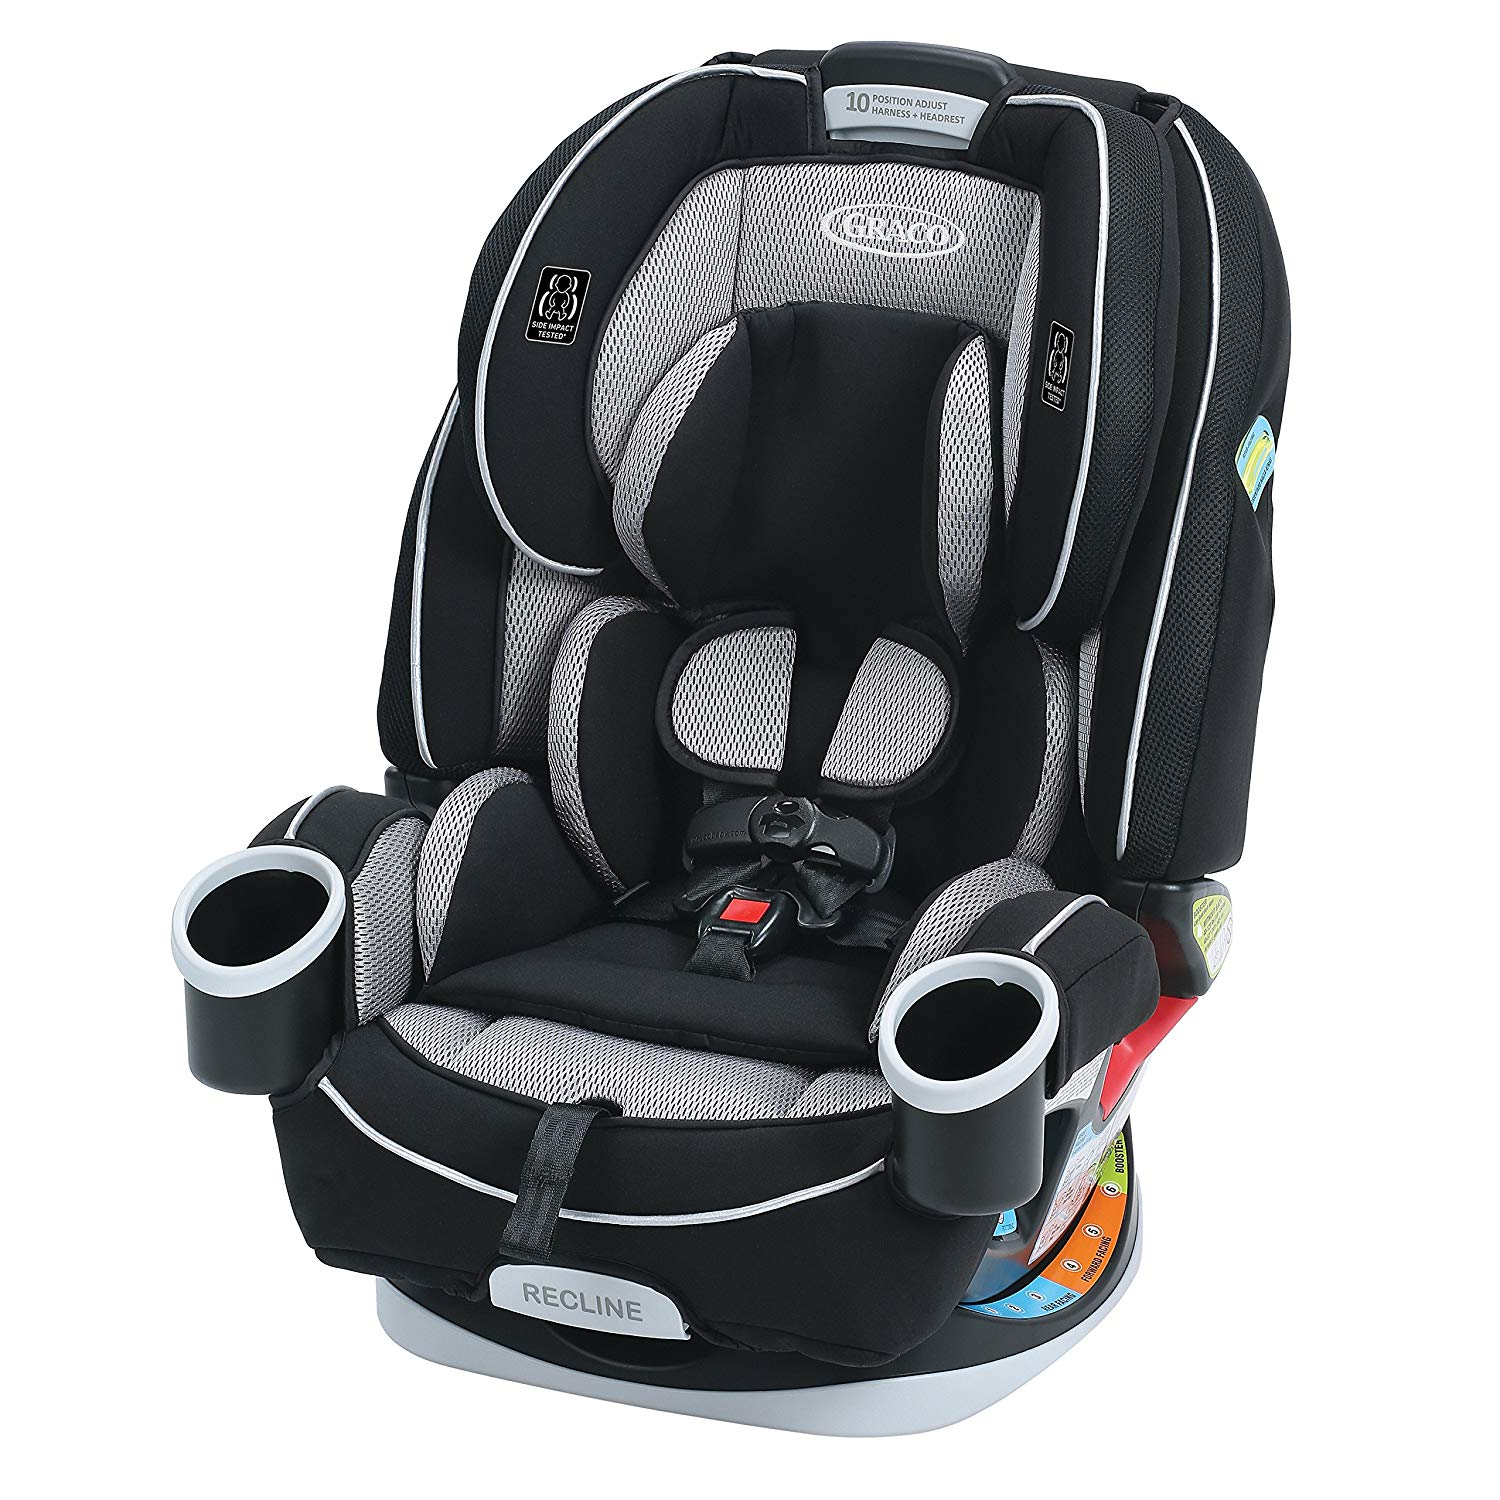 Graco 4Ever All-in-1 featuring Safety Surround